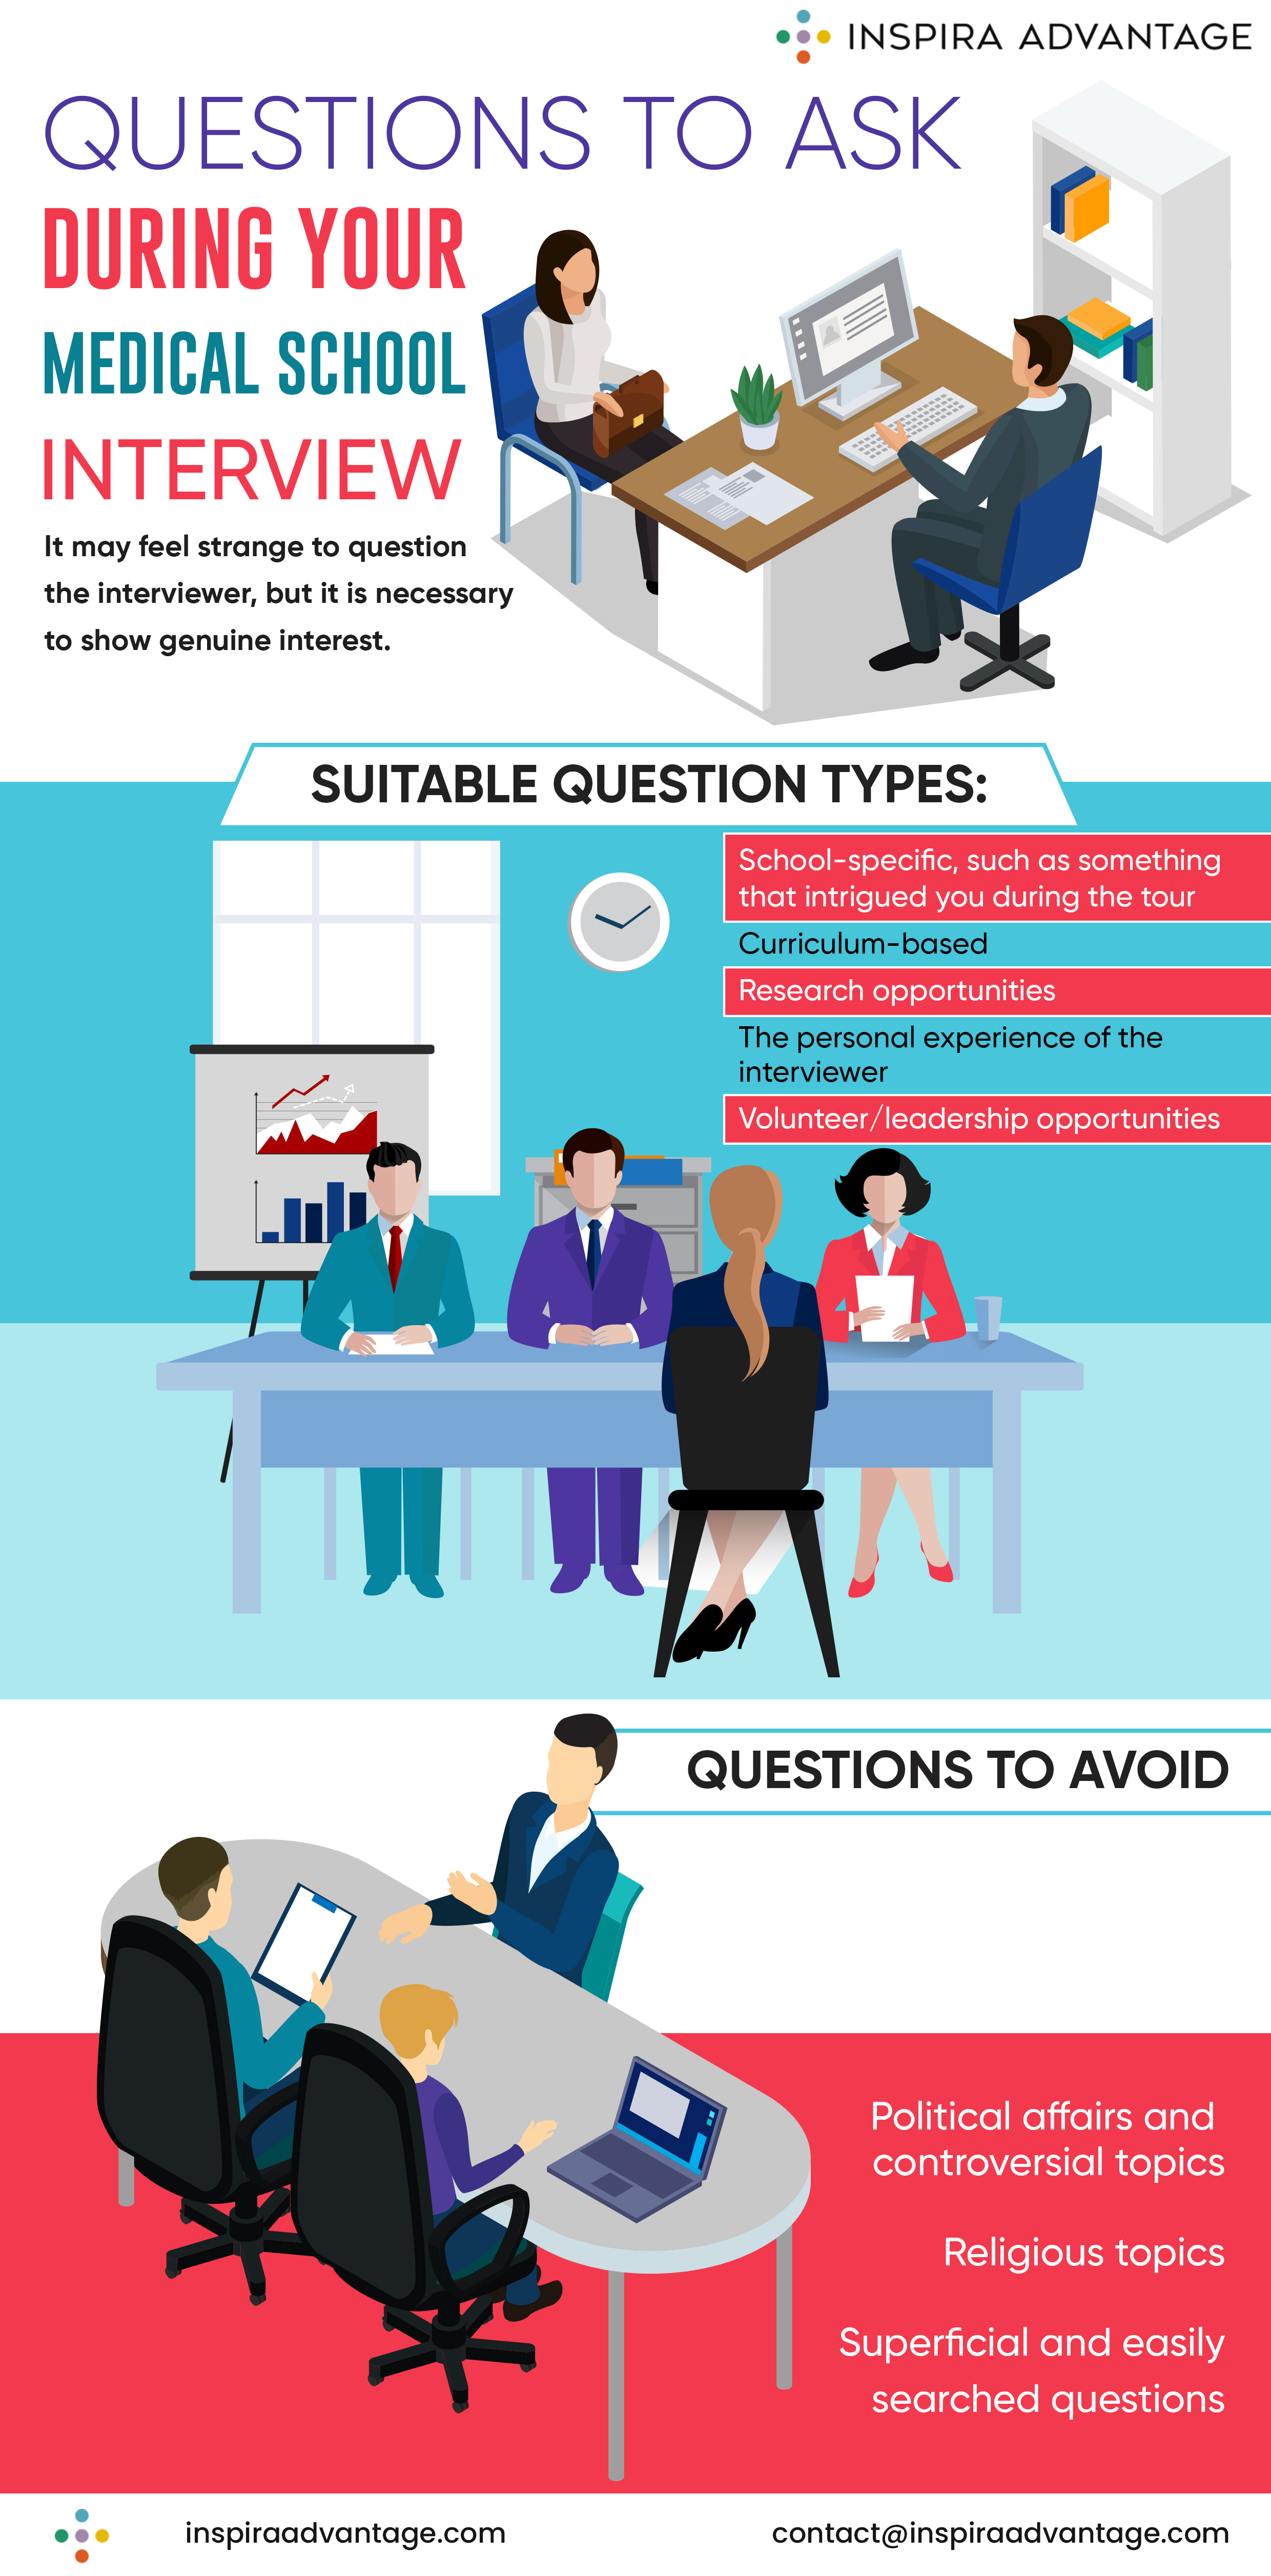 Questions to ask during your medical school interview